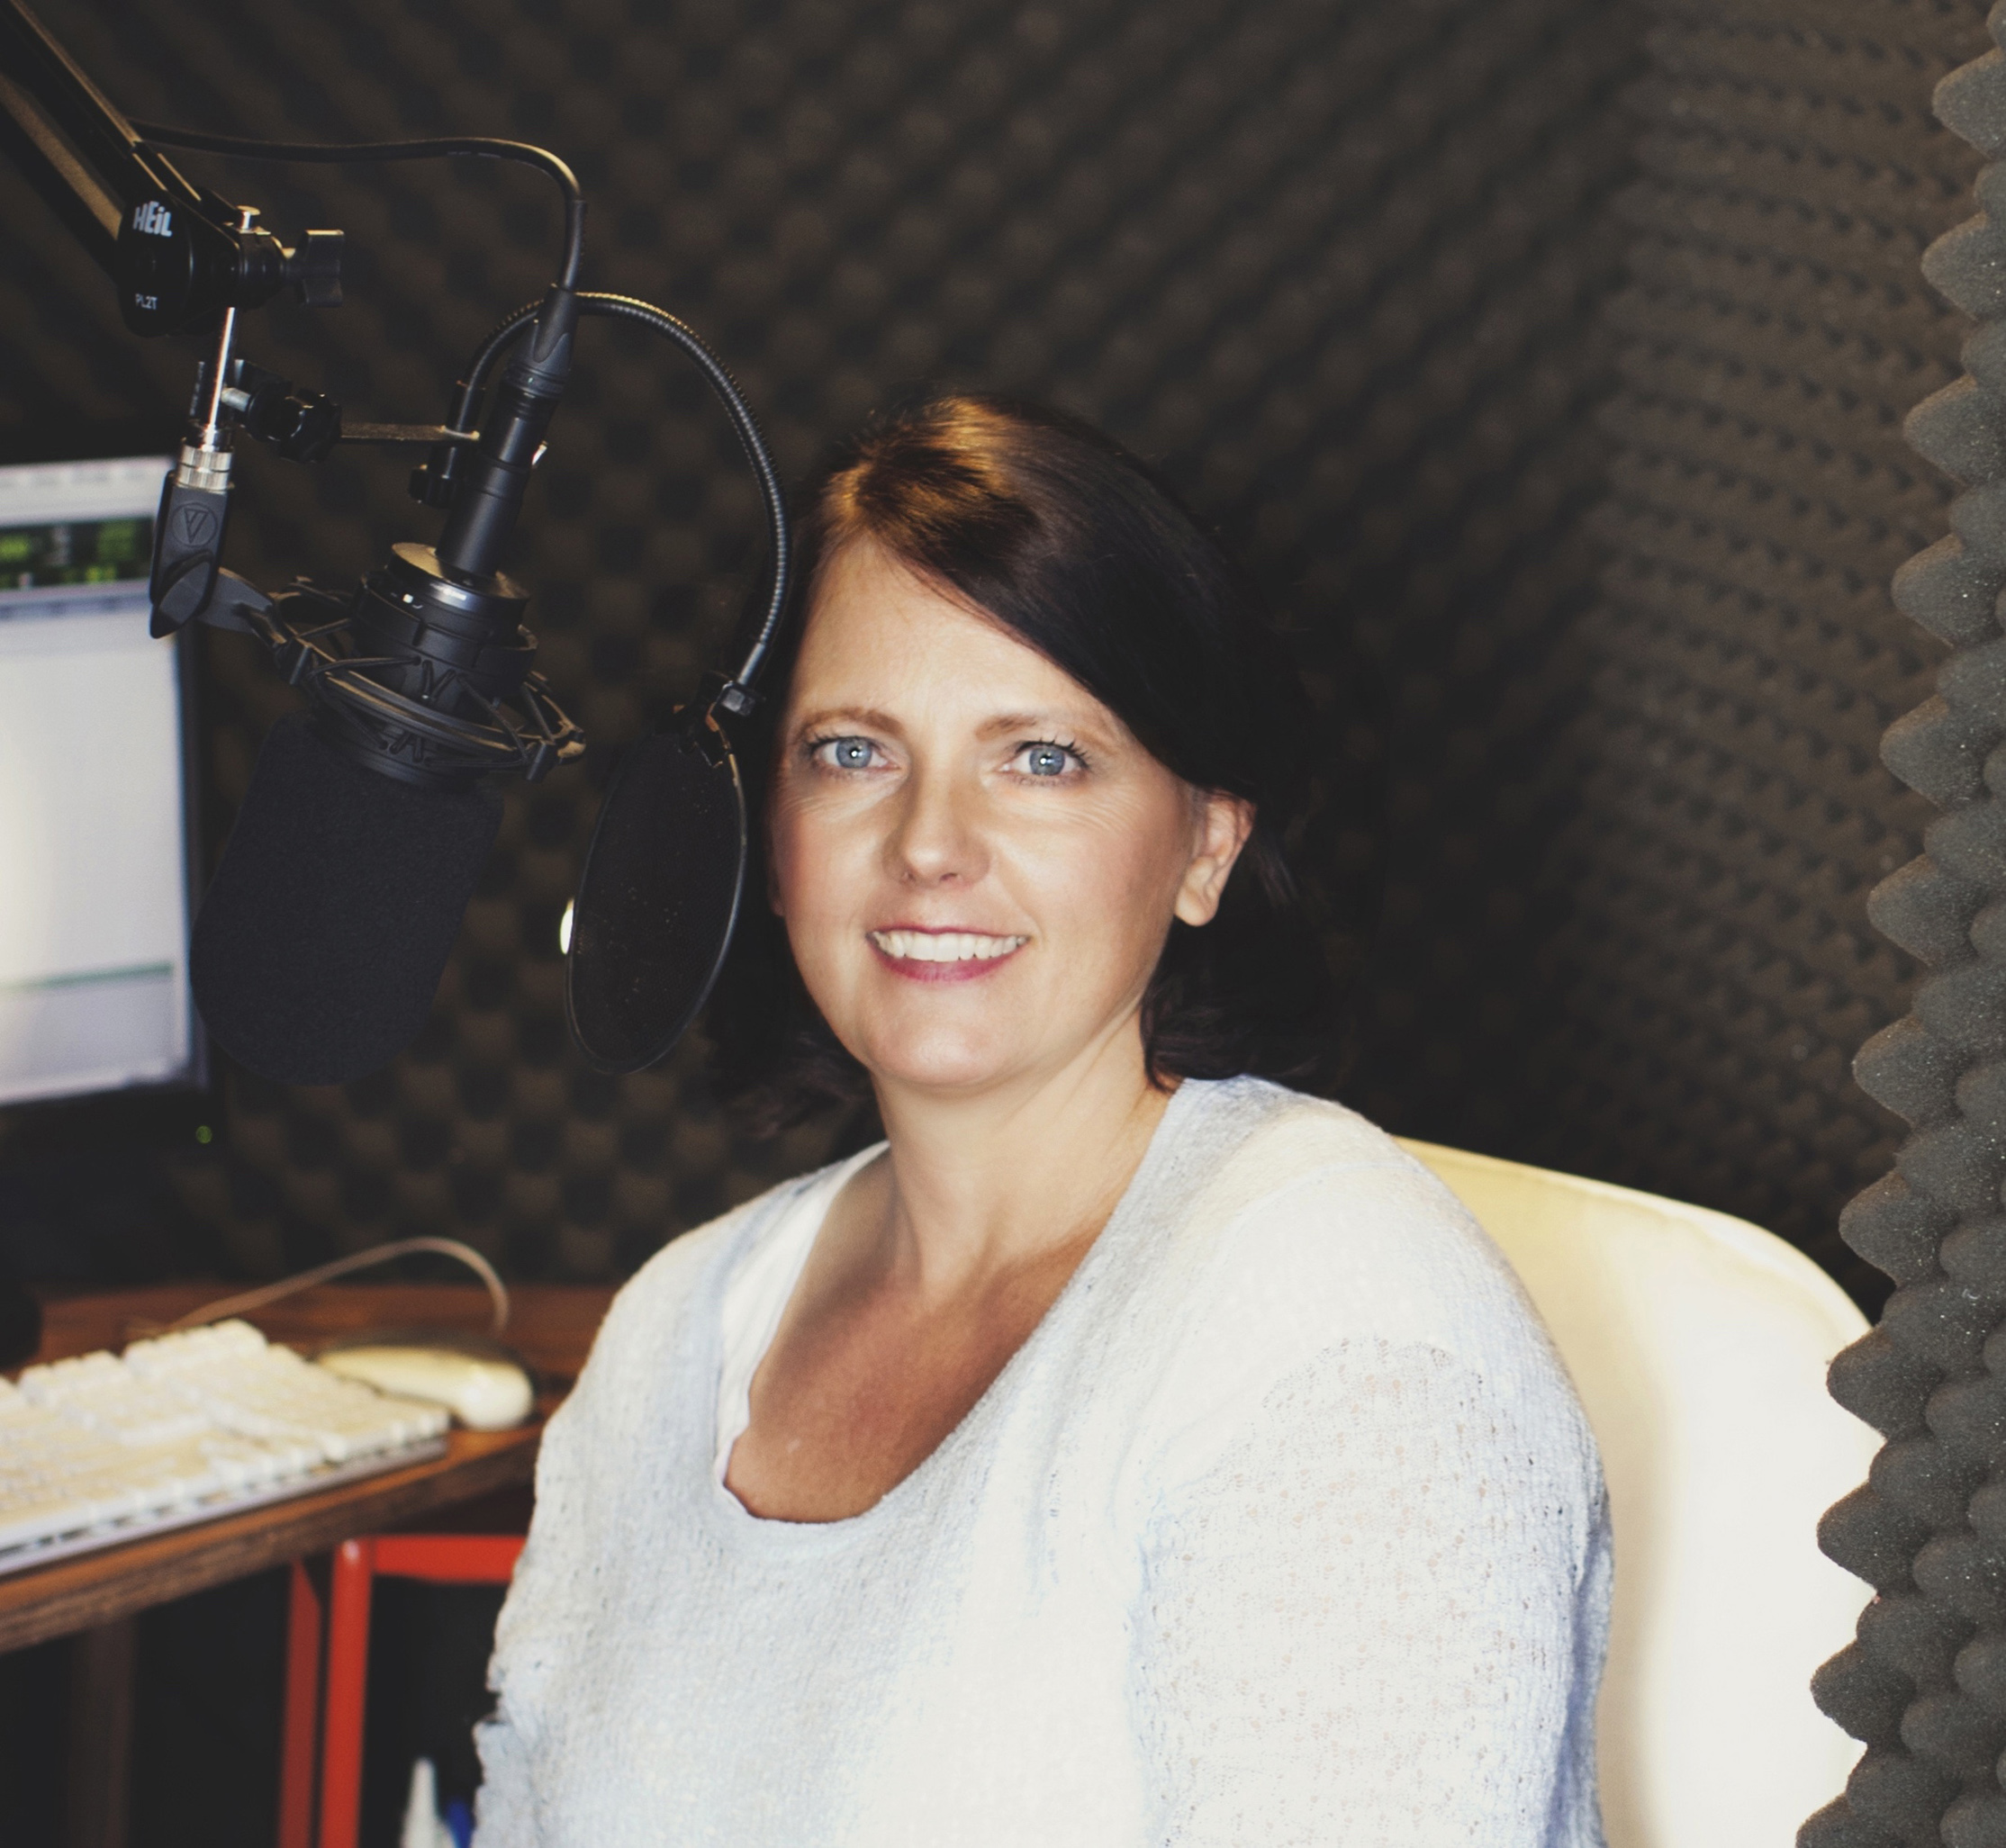 photo of voice actor Cassandra Campbell